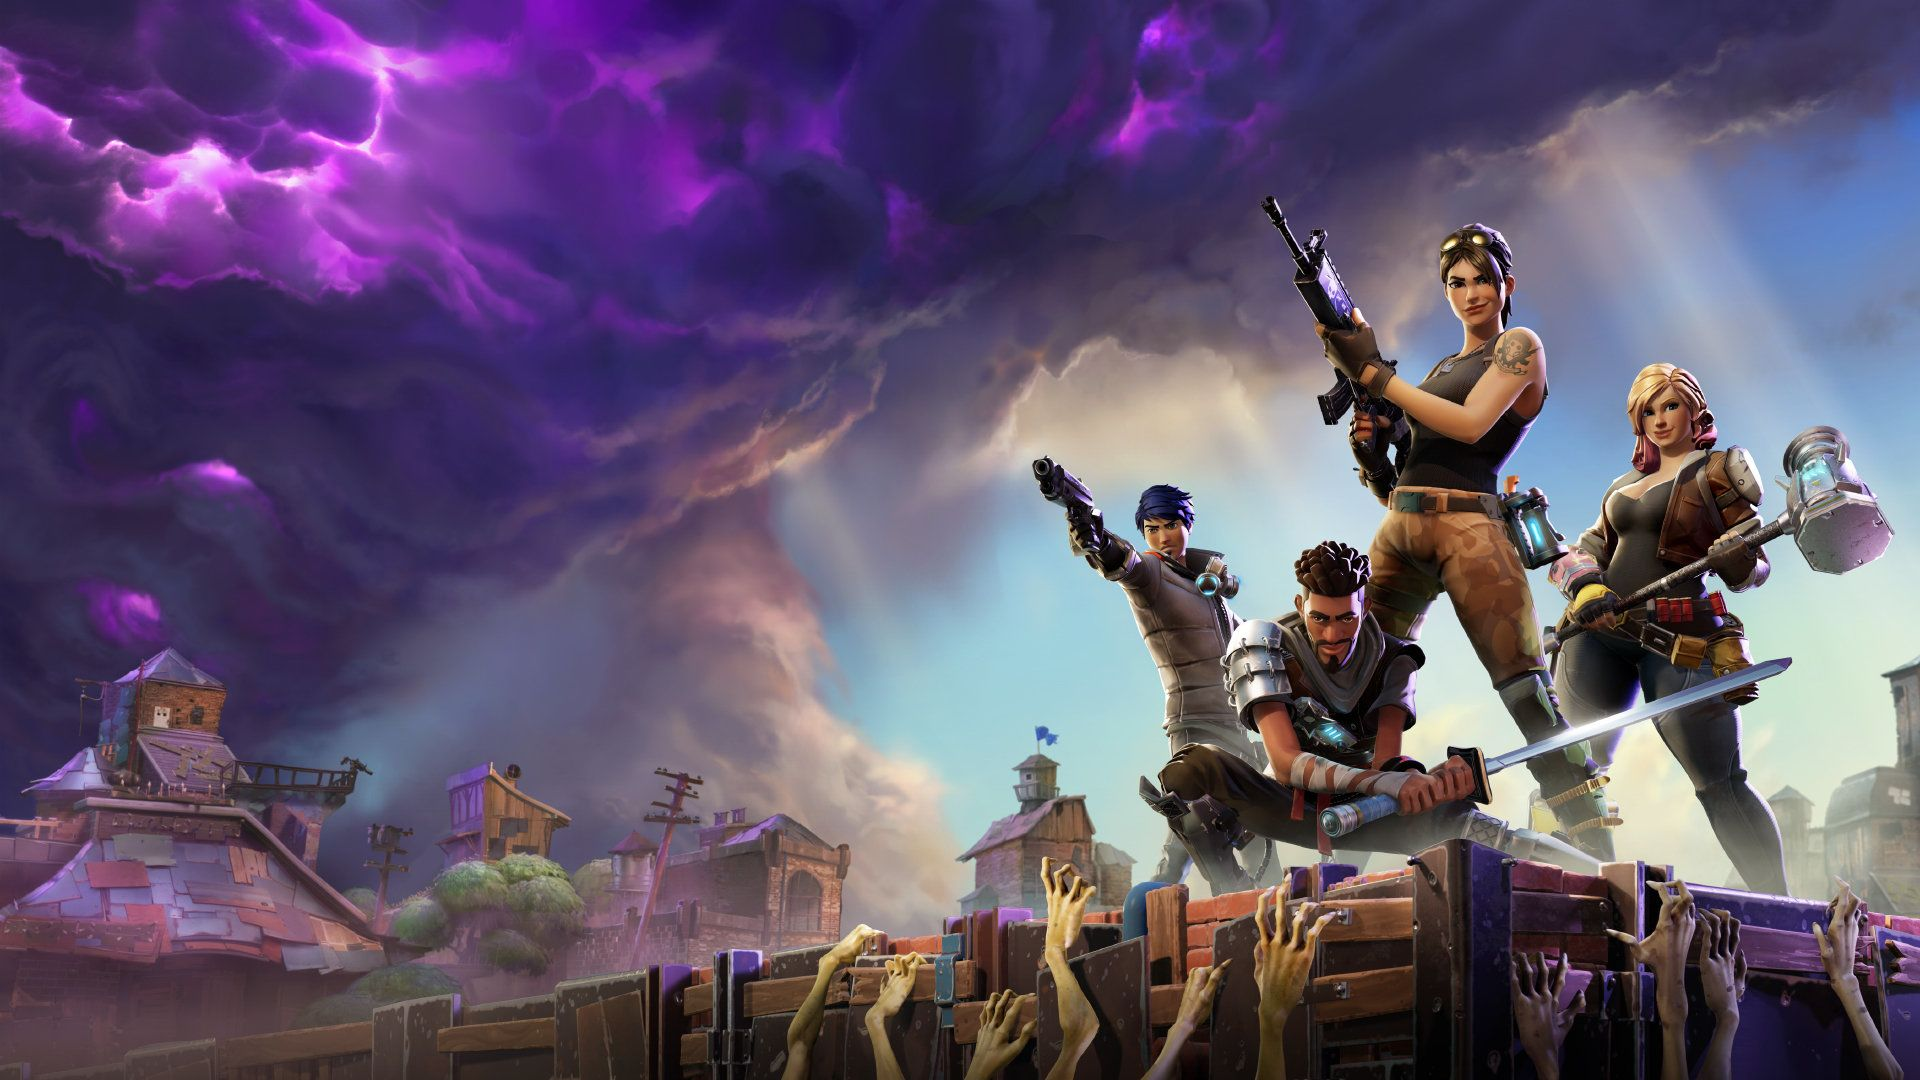 Fortnite Creator Epic Games Valued at Nearly $15 Billion